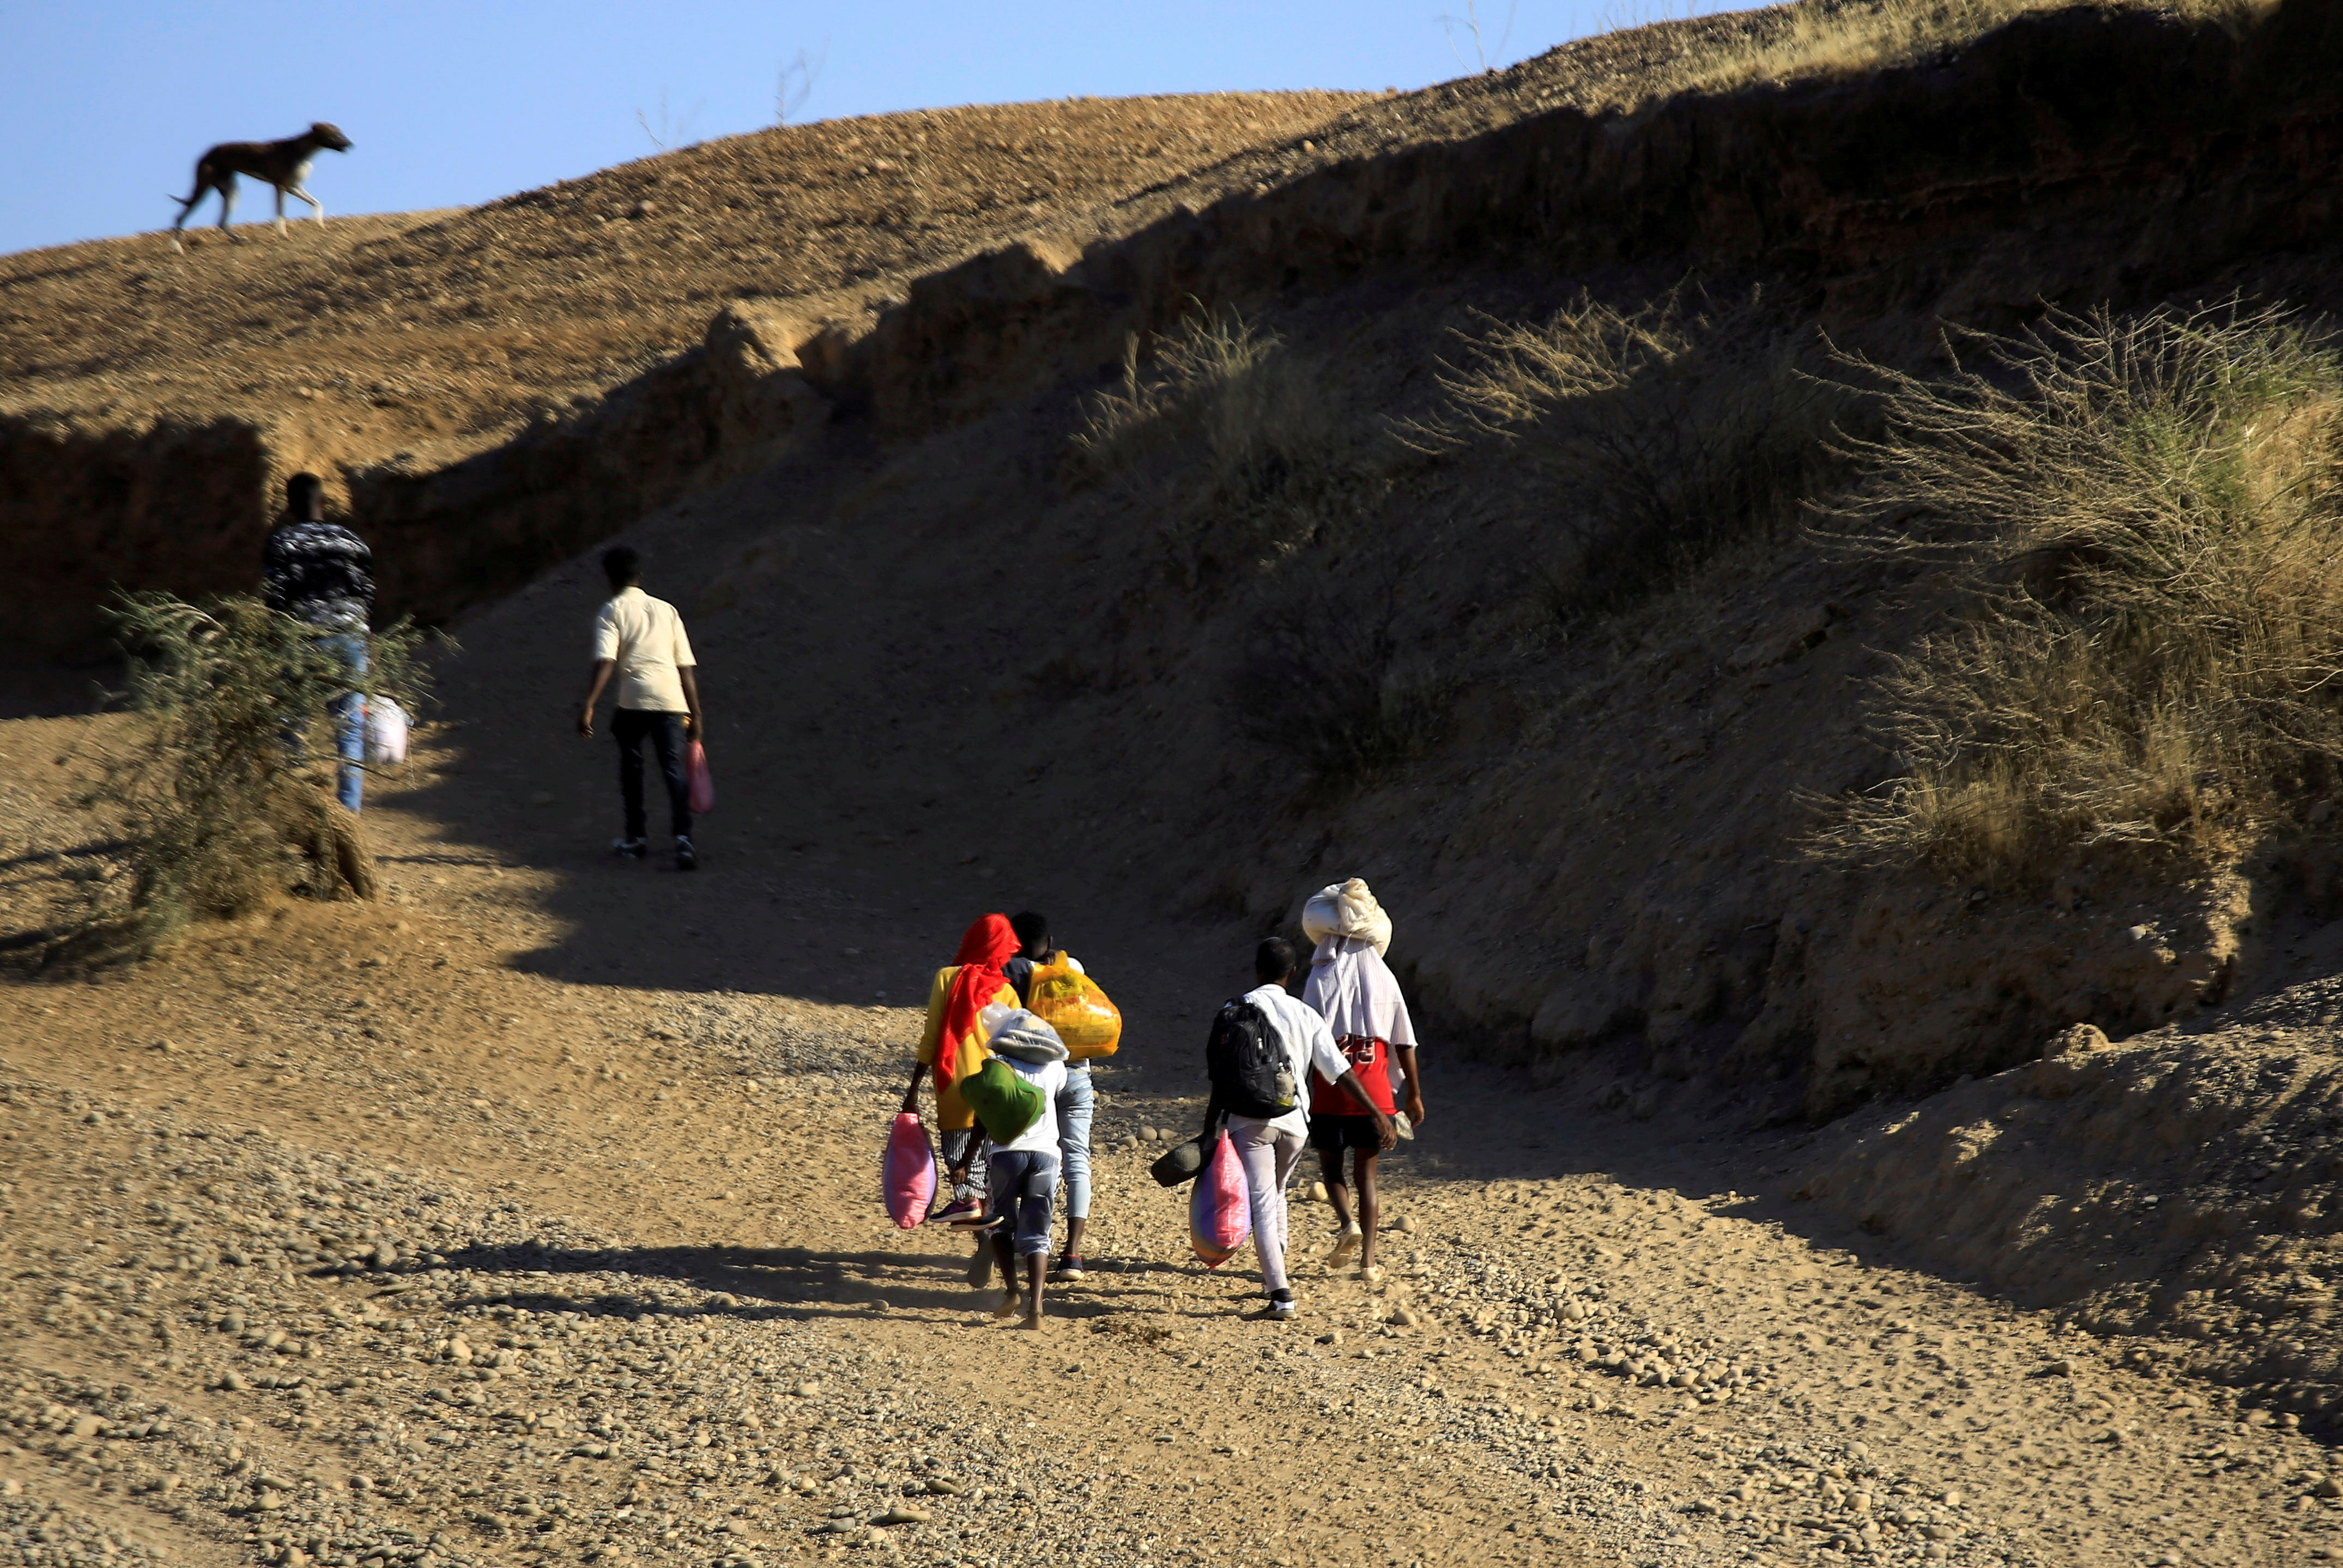 Ethiopians, who fled the ongoing fighting in Tigray region, carry their belongings after crossing the Setit River on the Sudan-Ethiopia border, in the eastern Kassala state, Sudan December 16, 2020. REUTERS/Mohamed Nureldin Abdallah/File Photo